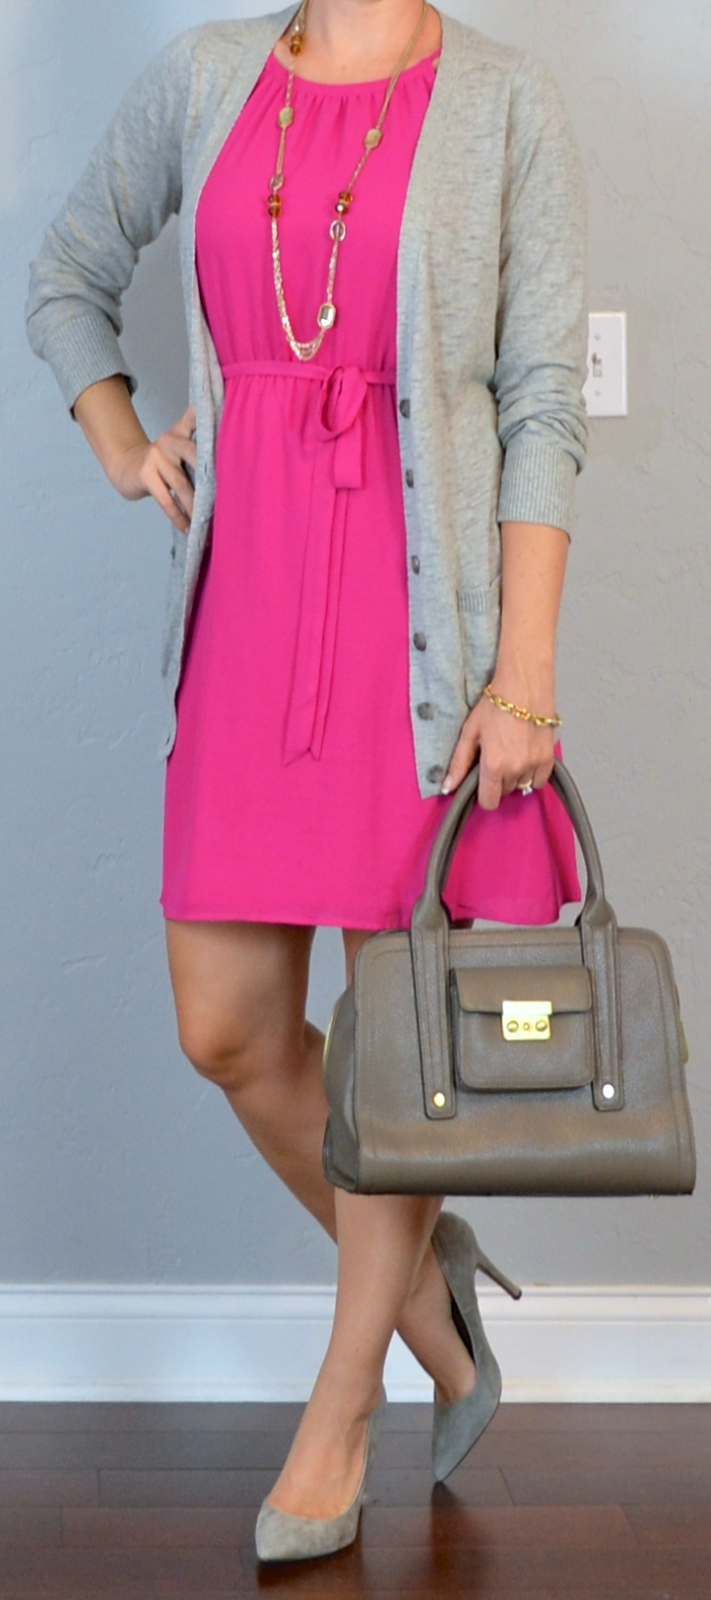 outfit post: hot pink dress, grey